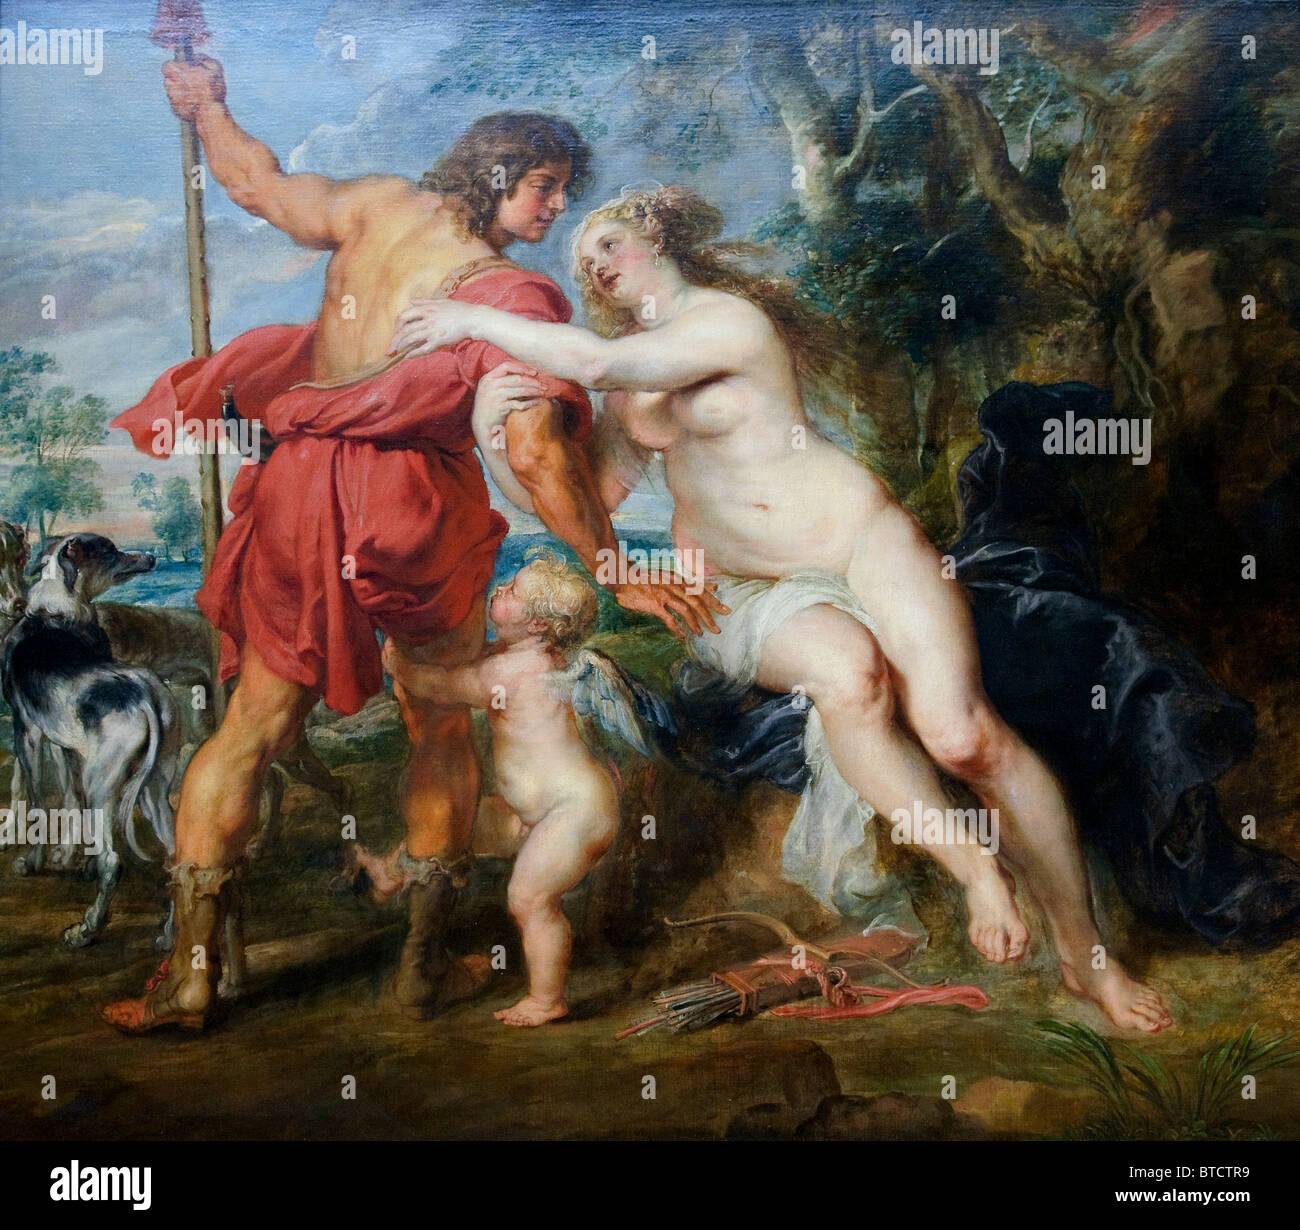 Venus and Adonis, mid- or late 1630s, by Peter Paul Rubens - Stock Image